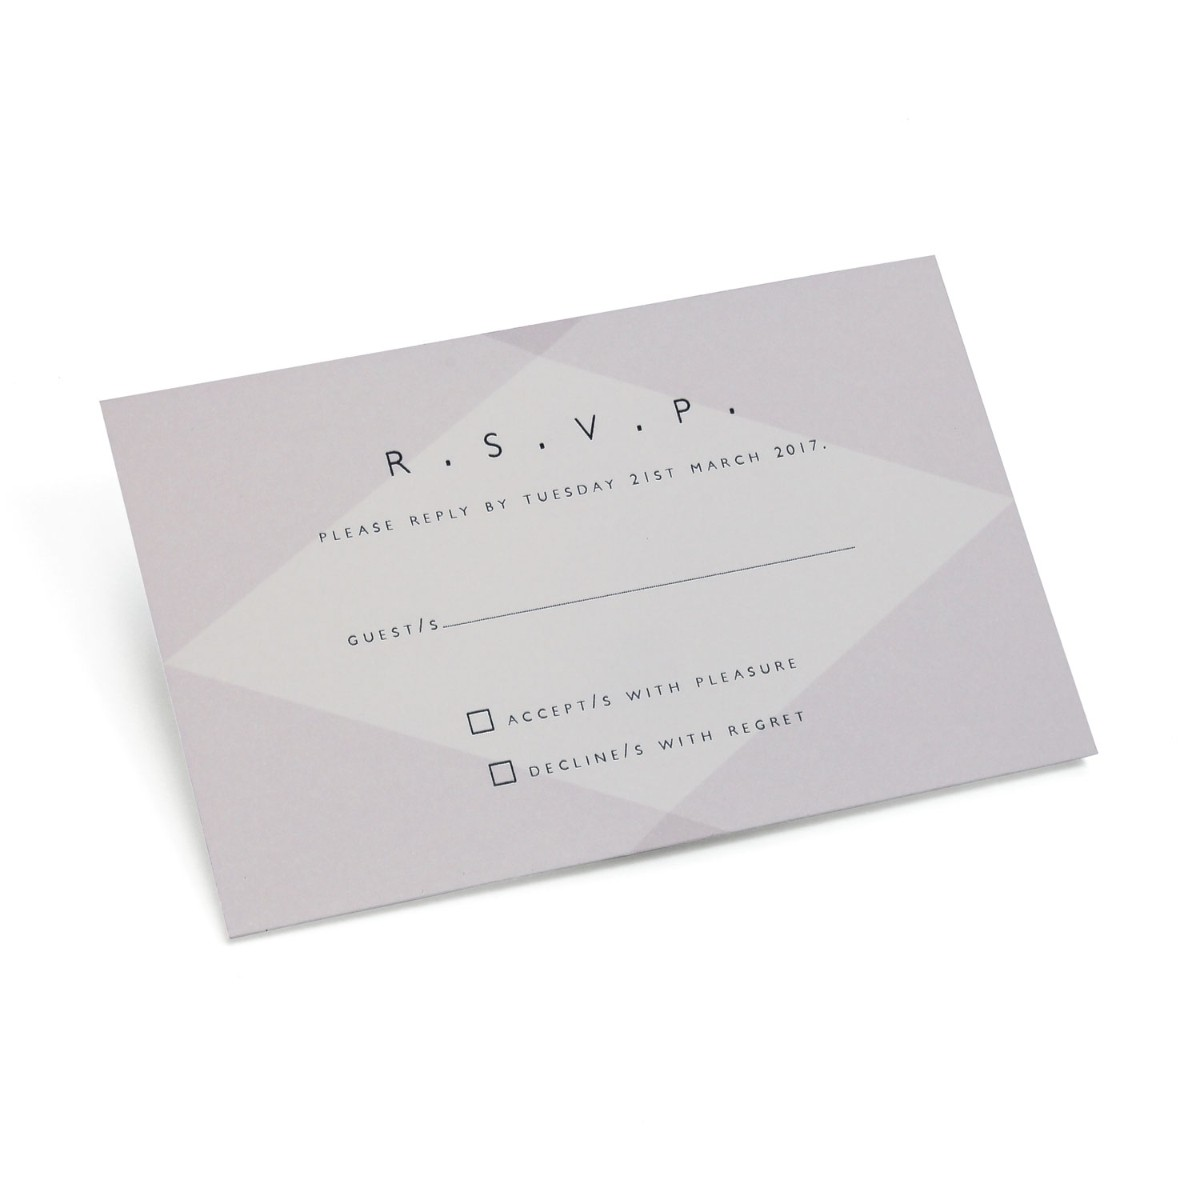 Facet Reply card